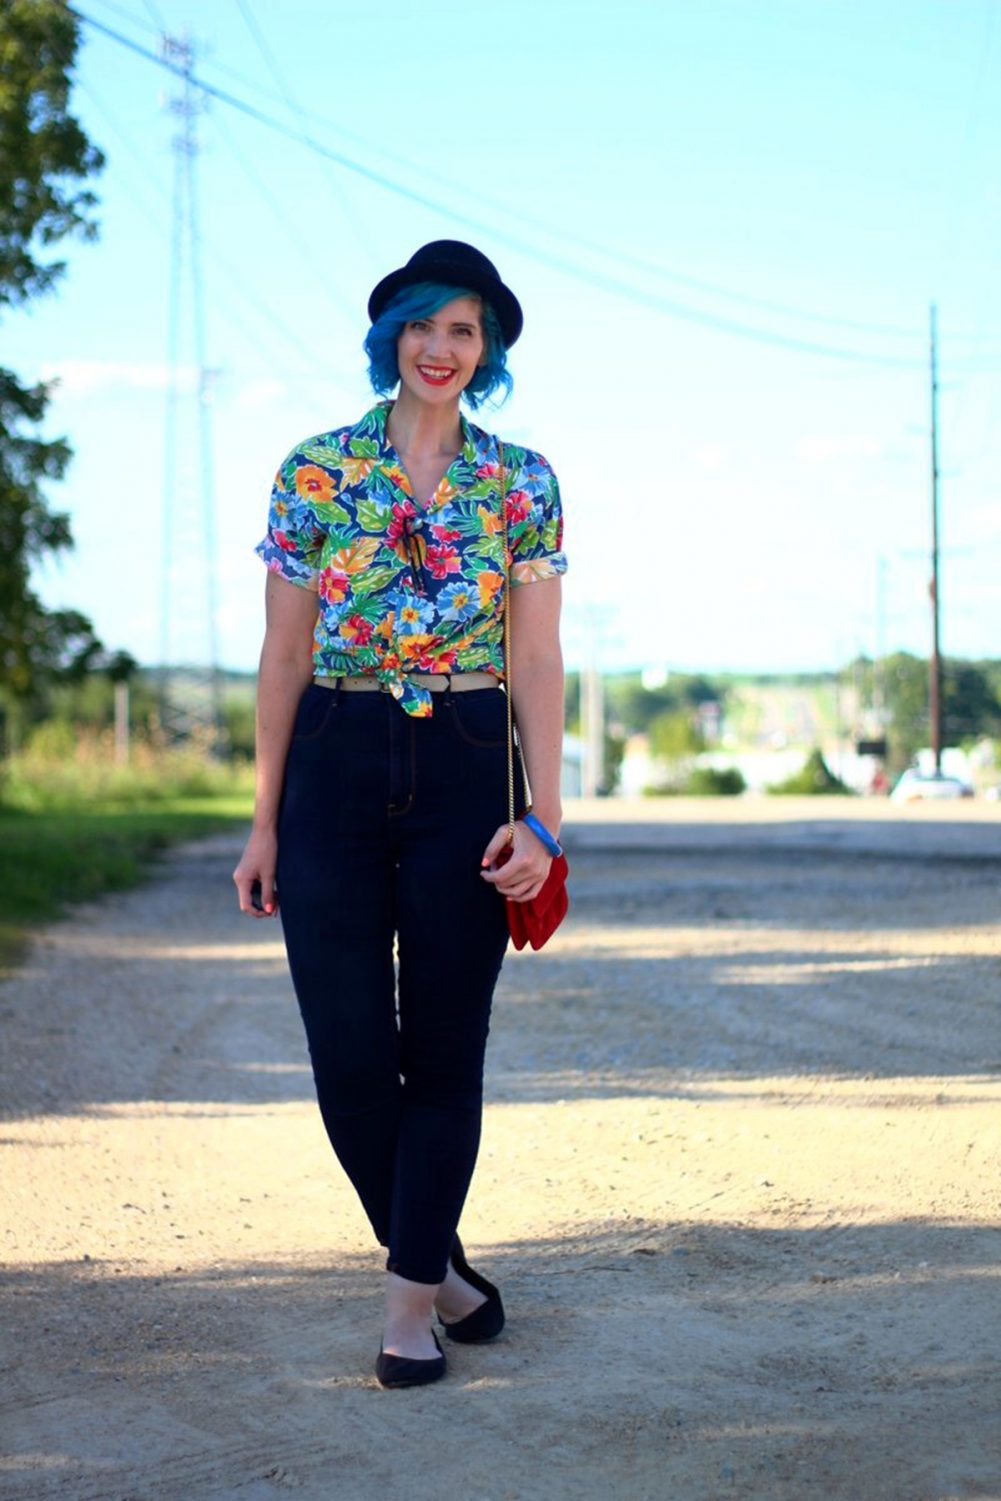 Outfit: Hawaiian print shirt, high waisted dark wash jeans, small red purse, NYX red lipstick, blue hair, black pork pie hat, black flats